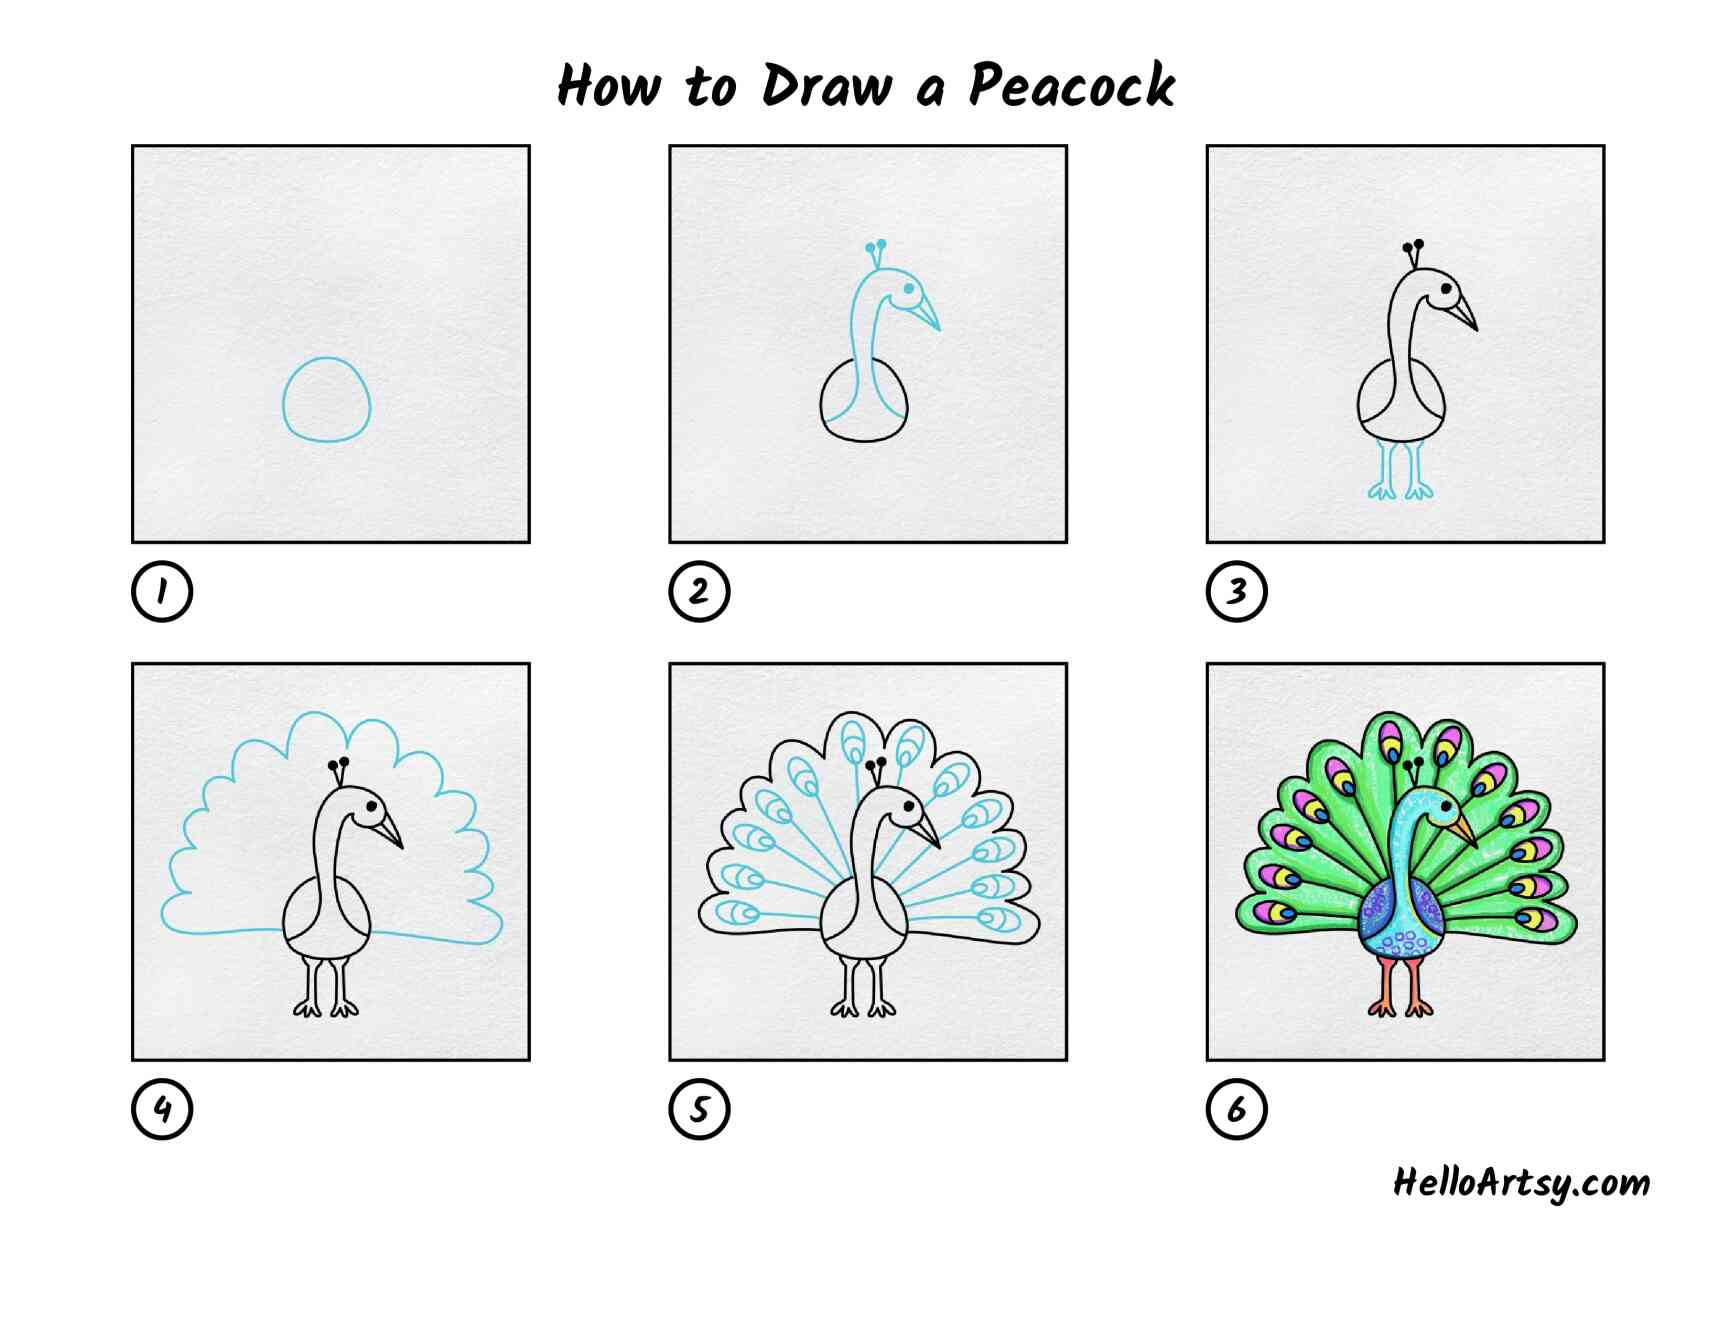 How To Draw A Peacock: All Steps